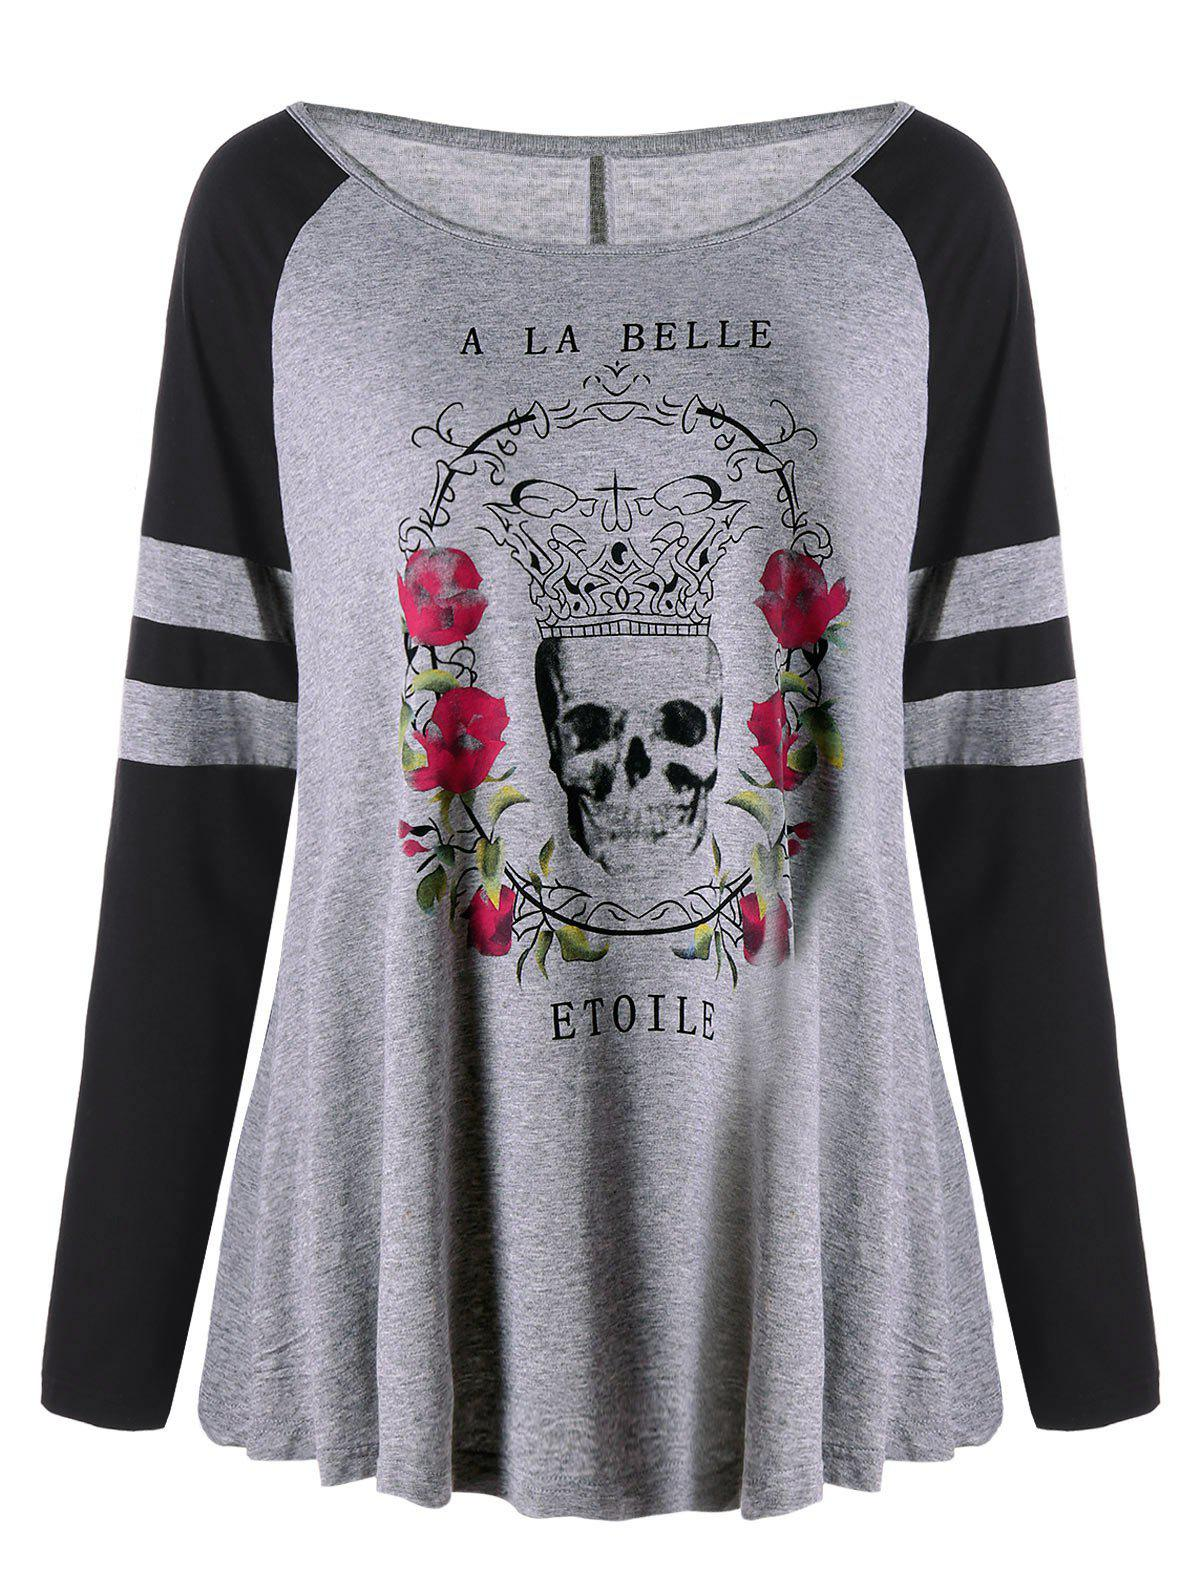 Plus Size Floral Skulls Raglan Sleeve T-shirtWOMEN<br><br>Size: 2XL; Color: GRAY; Material: Cotton,Polyester; Shirt Length: Regular; Sleeve Length: Full; Collar: Scoop Neck; Style: Casual; Season: Fall,Spring; Pattern Type: Floral,Letter,Skulls; Weight: 0.3000kg; Package Contents: 1 x T-shirt;